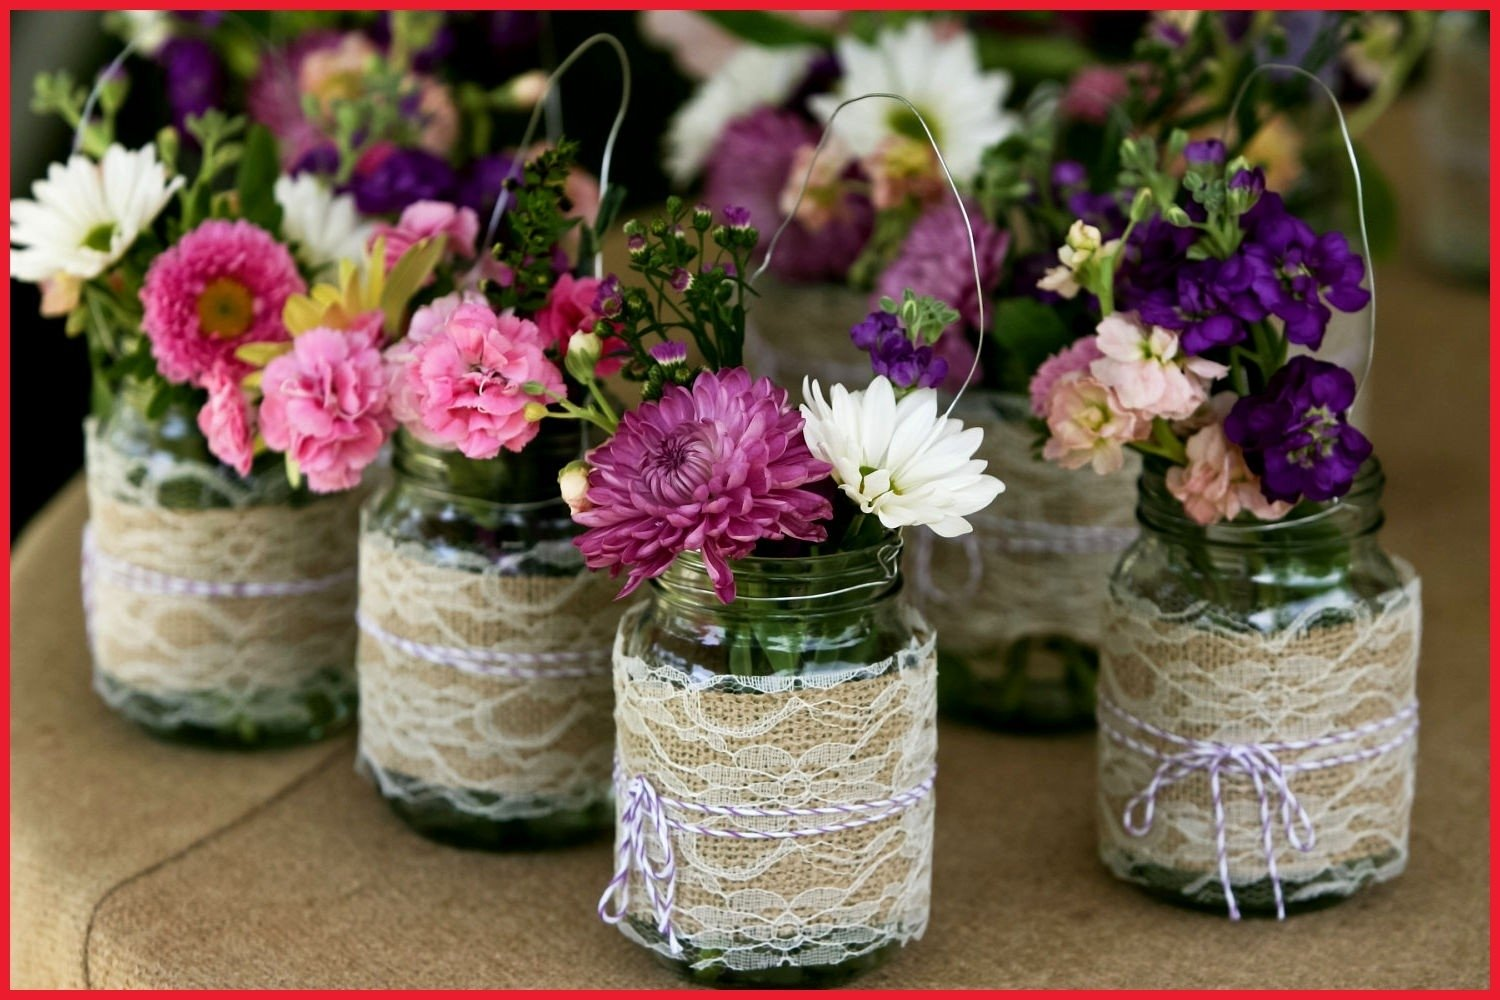 10 Lovable Mason Jar Ideas For Weddings best wedding decorations with mason jars ideas styles decorating for 2020